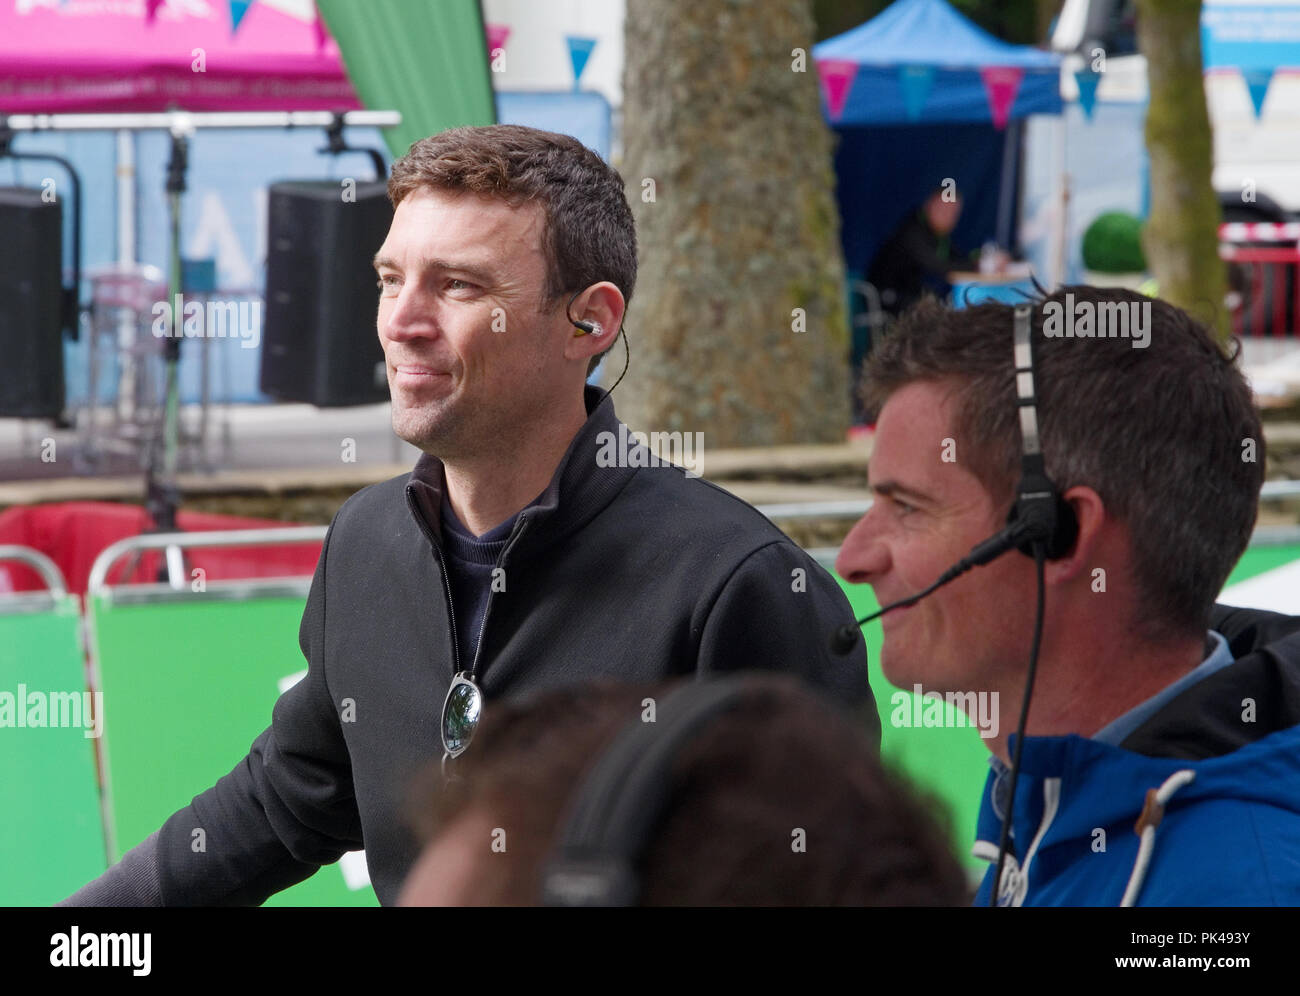 Stage 6 Tour of Britain 2018 7 September. Yanto Barker, presenter for ITV4, with film crew at Whinlatter preparing for live broadcast of race. - Stock Image